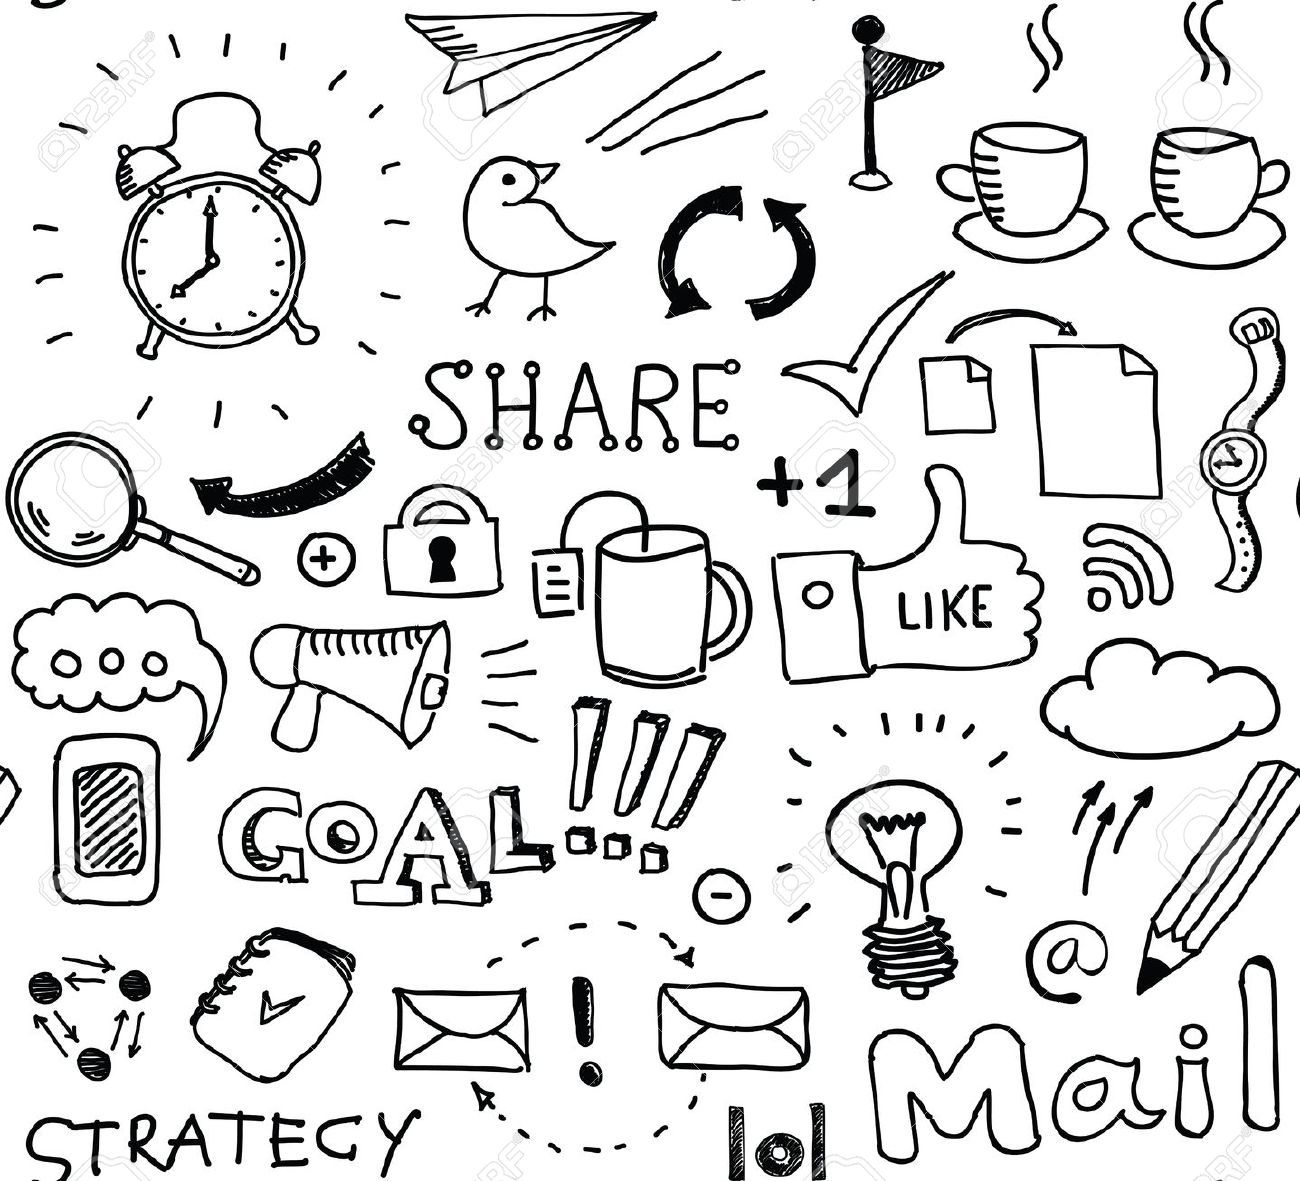 Hand drawn vector seamless pattern of brainstorming doodles elements | Pattern Drawing | 스티커, 자수